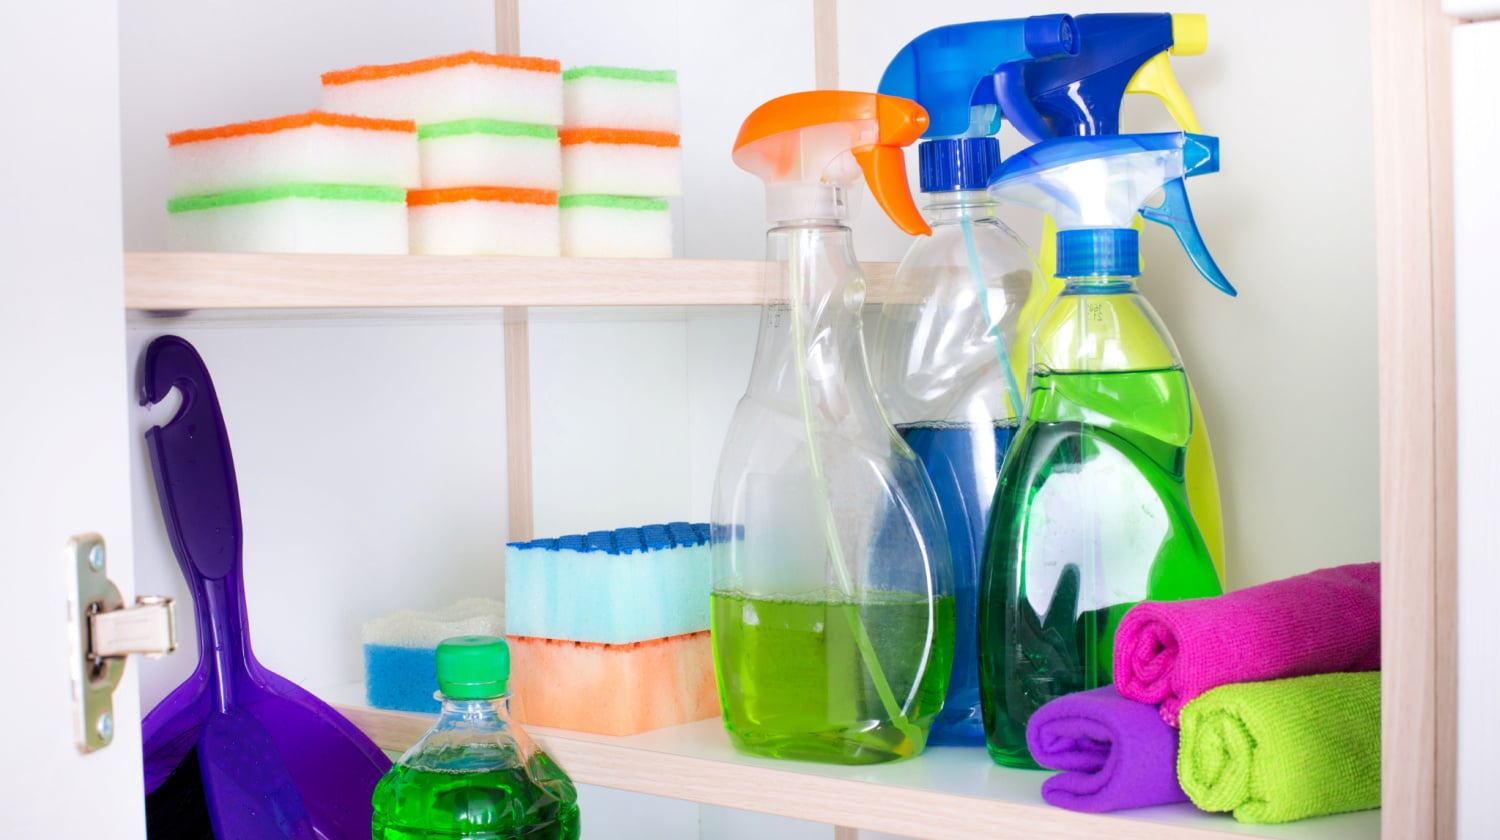 Cleaning tools and supplies in an open cupboard